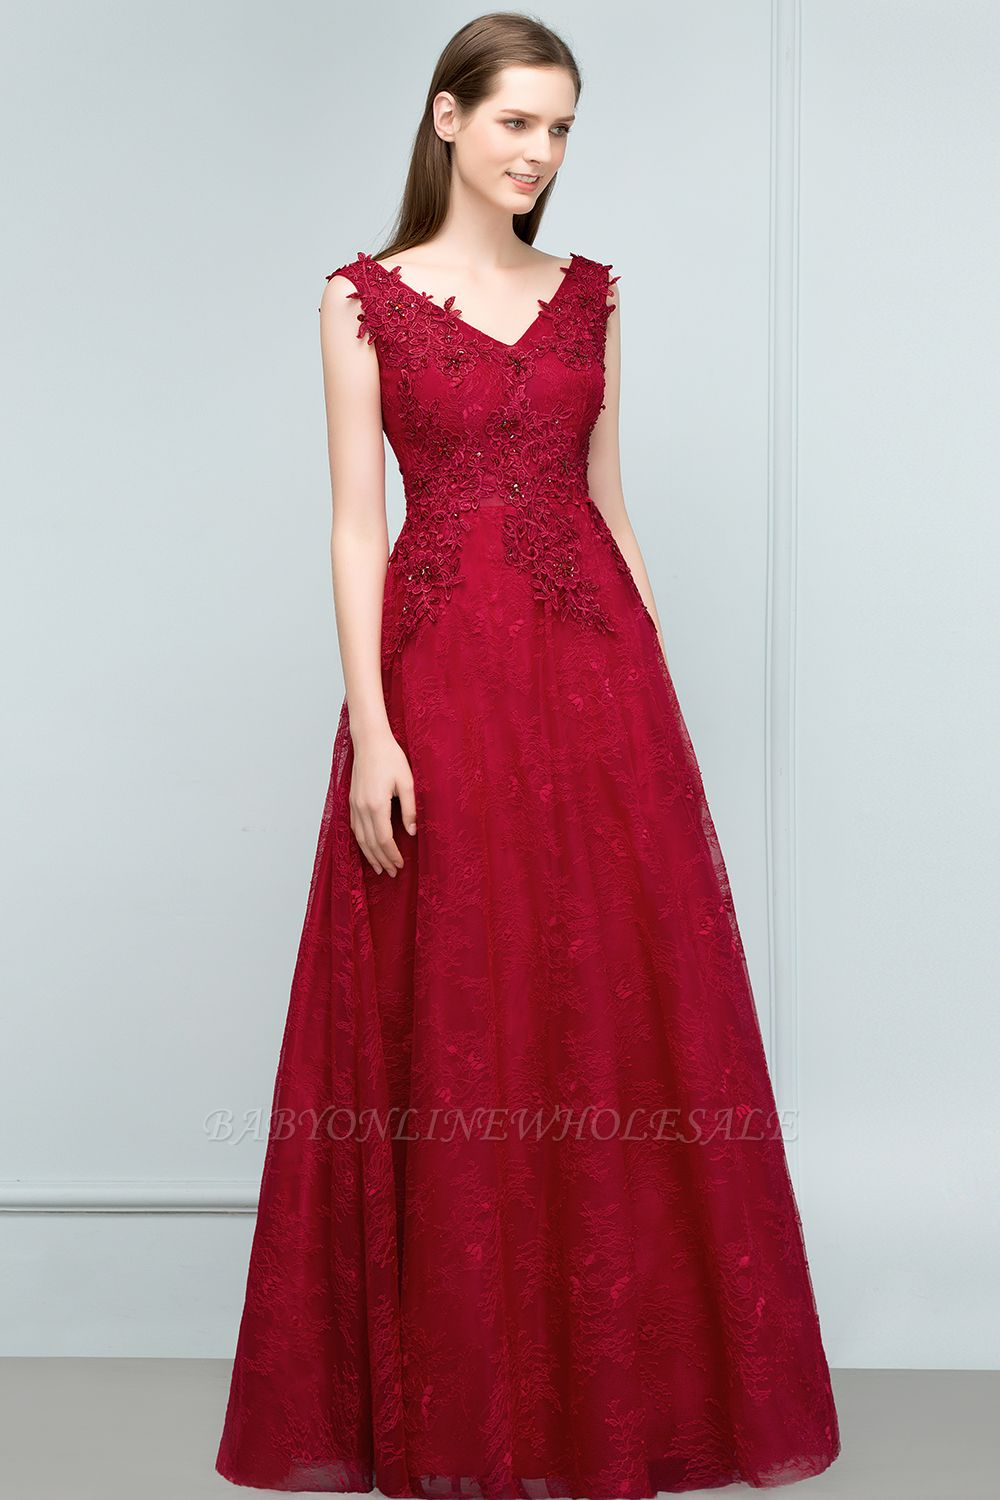 JUDITH | A-line V-neck Long Sleeveless Lace Appliques Prom Dresses with Crystals